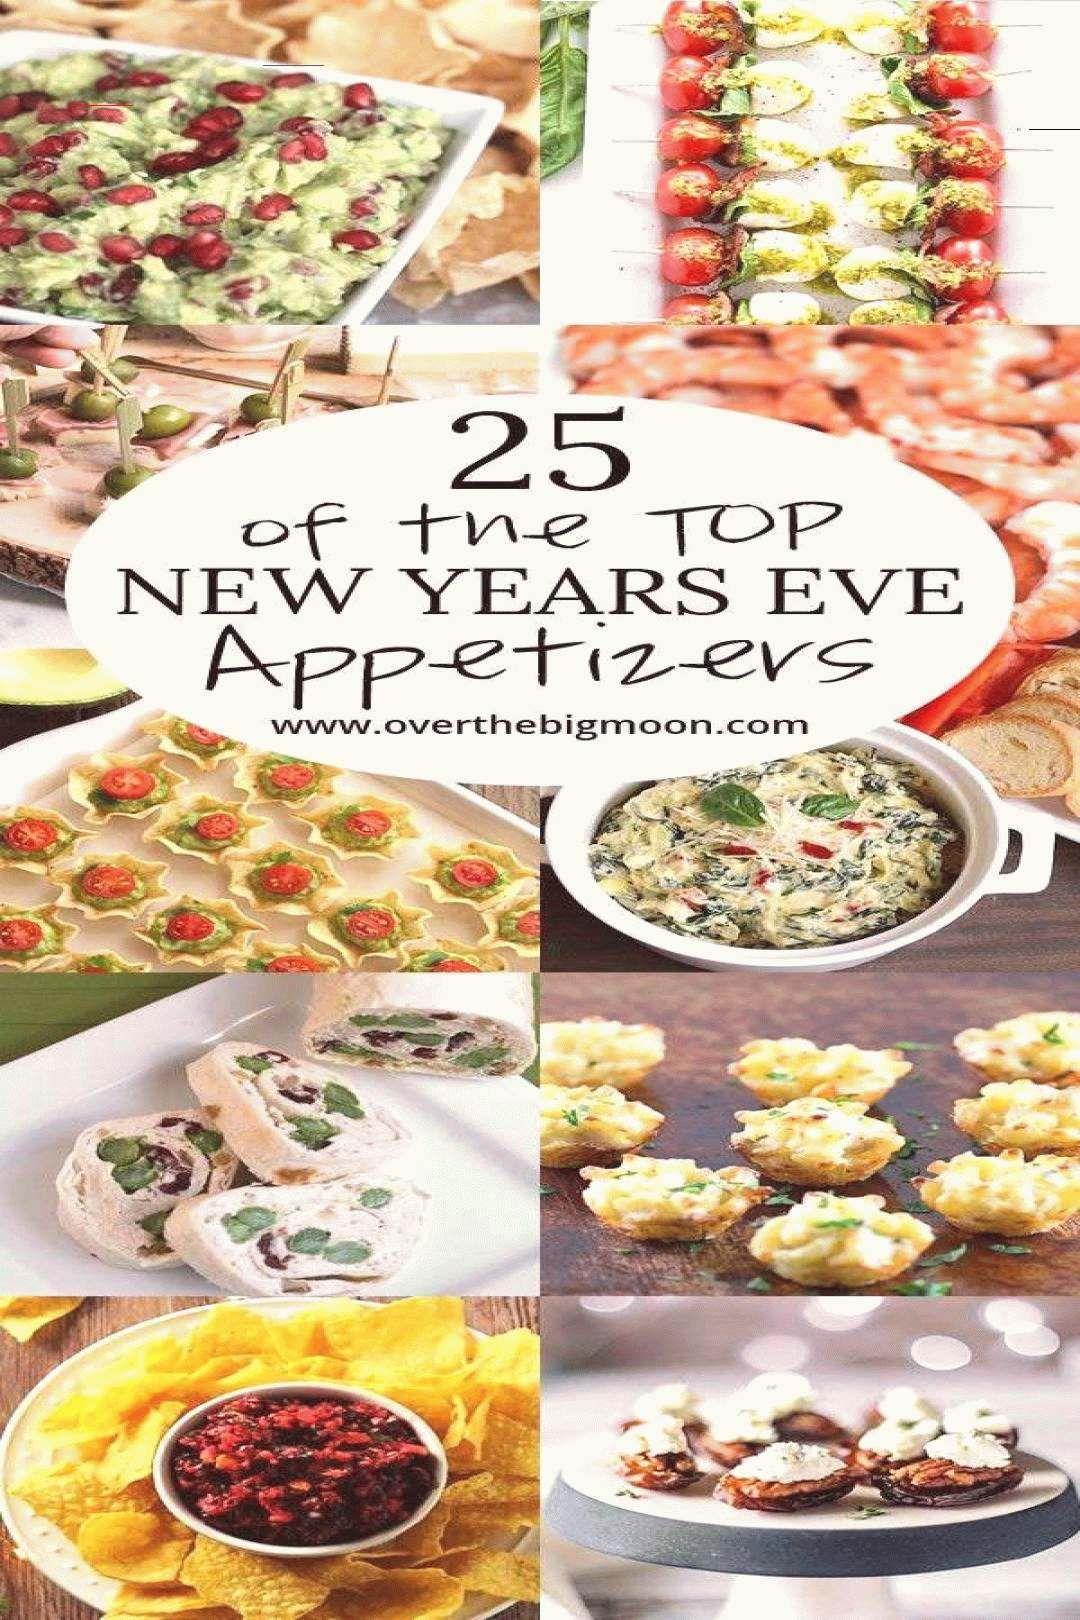 Top 25 New Years Eve Appetizers for your party